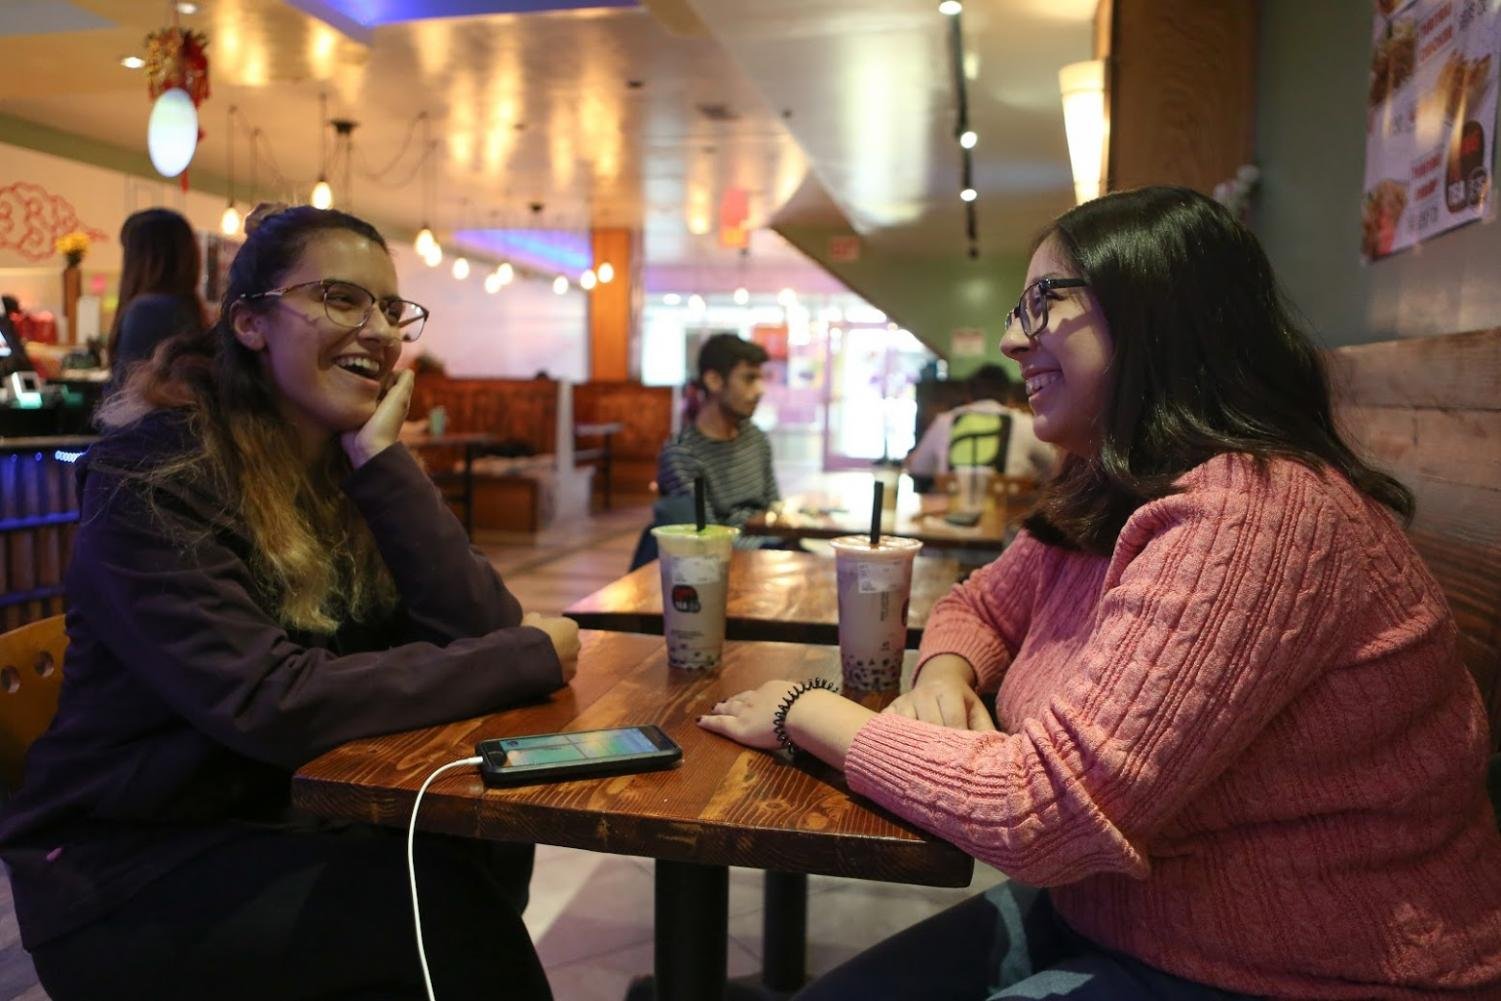 Lillian Tate, a junior in ACES, and Elizabeth Murillo, a junior in Engineering, enjoy bubble tea at Kung Fu Tea on Friday. Bubble tea shops continue to pop up around the Champaign area.